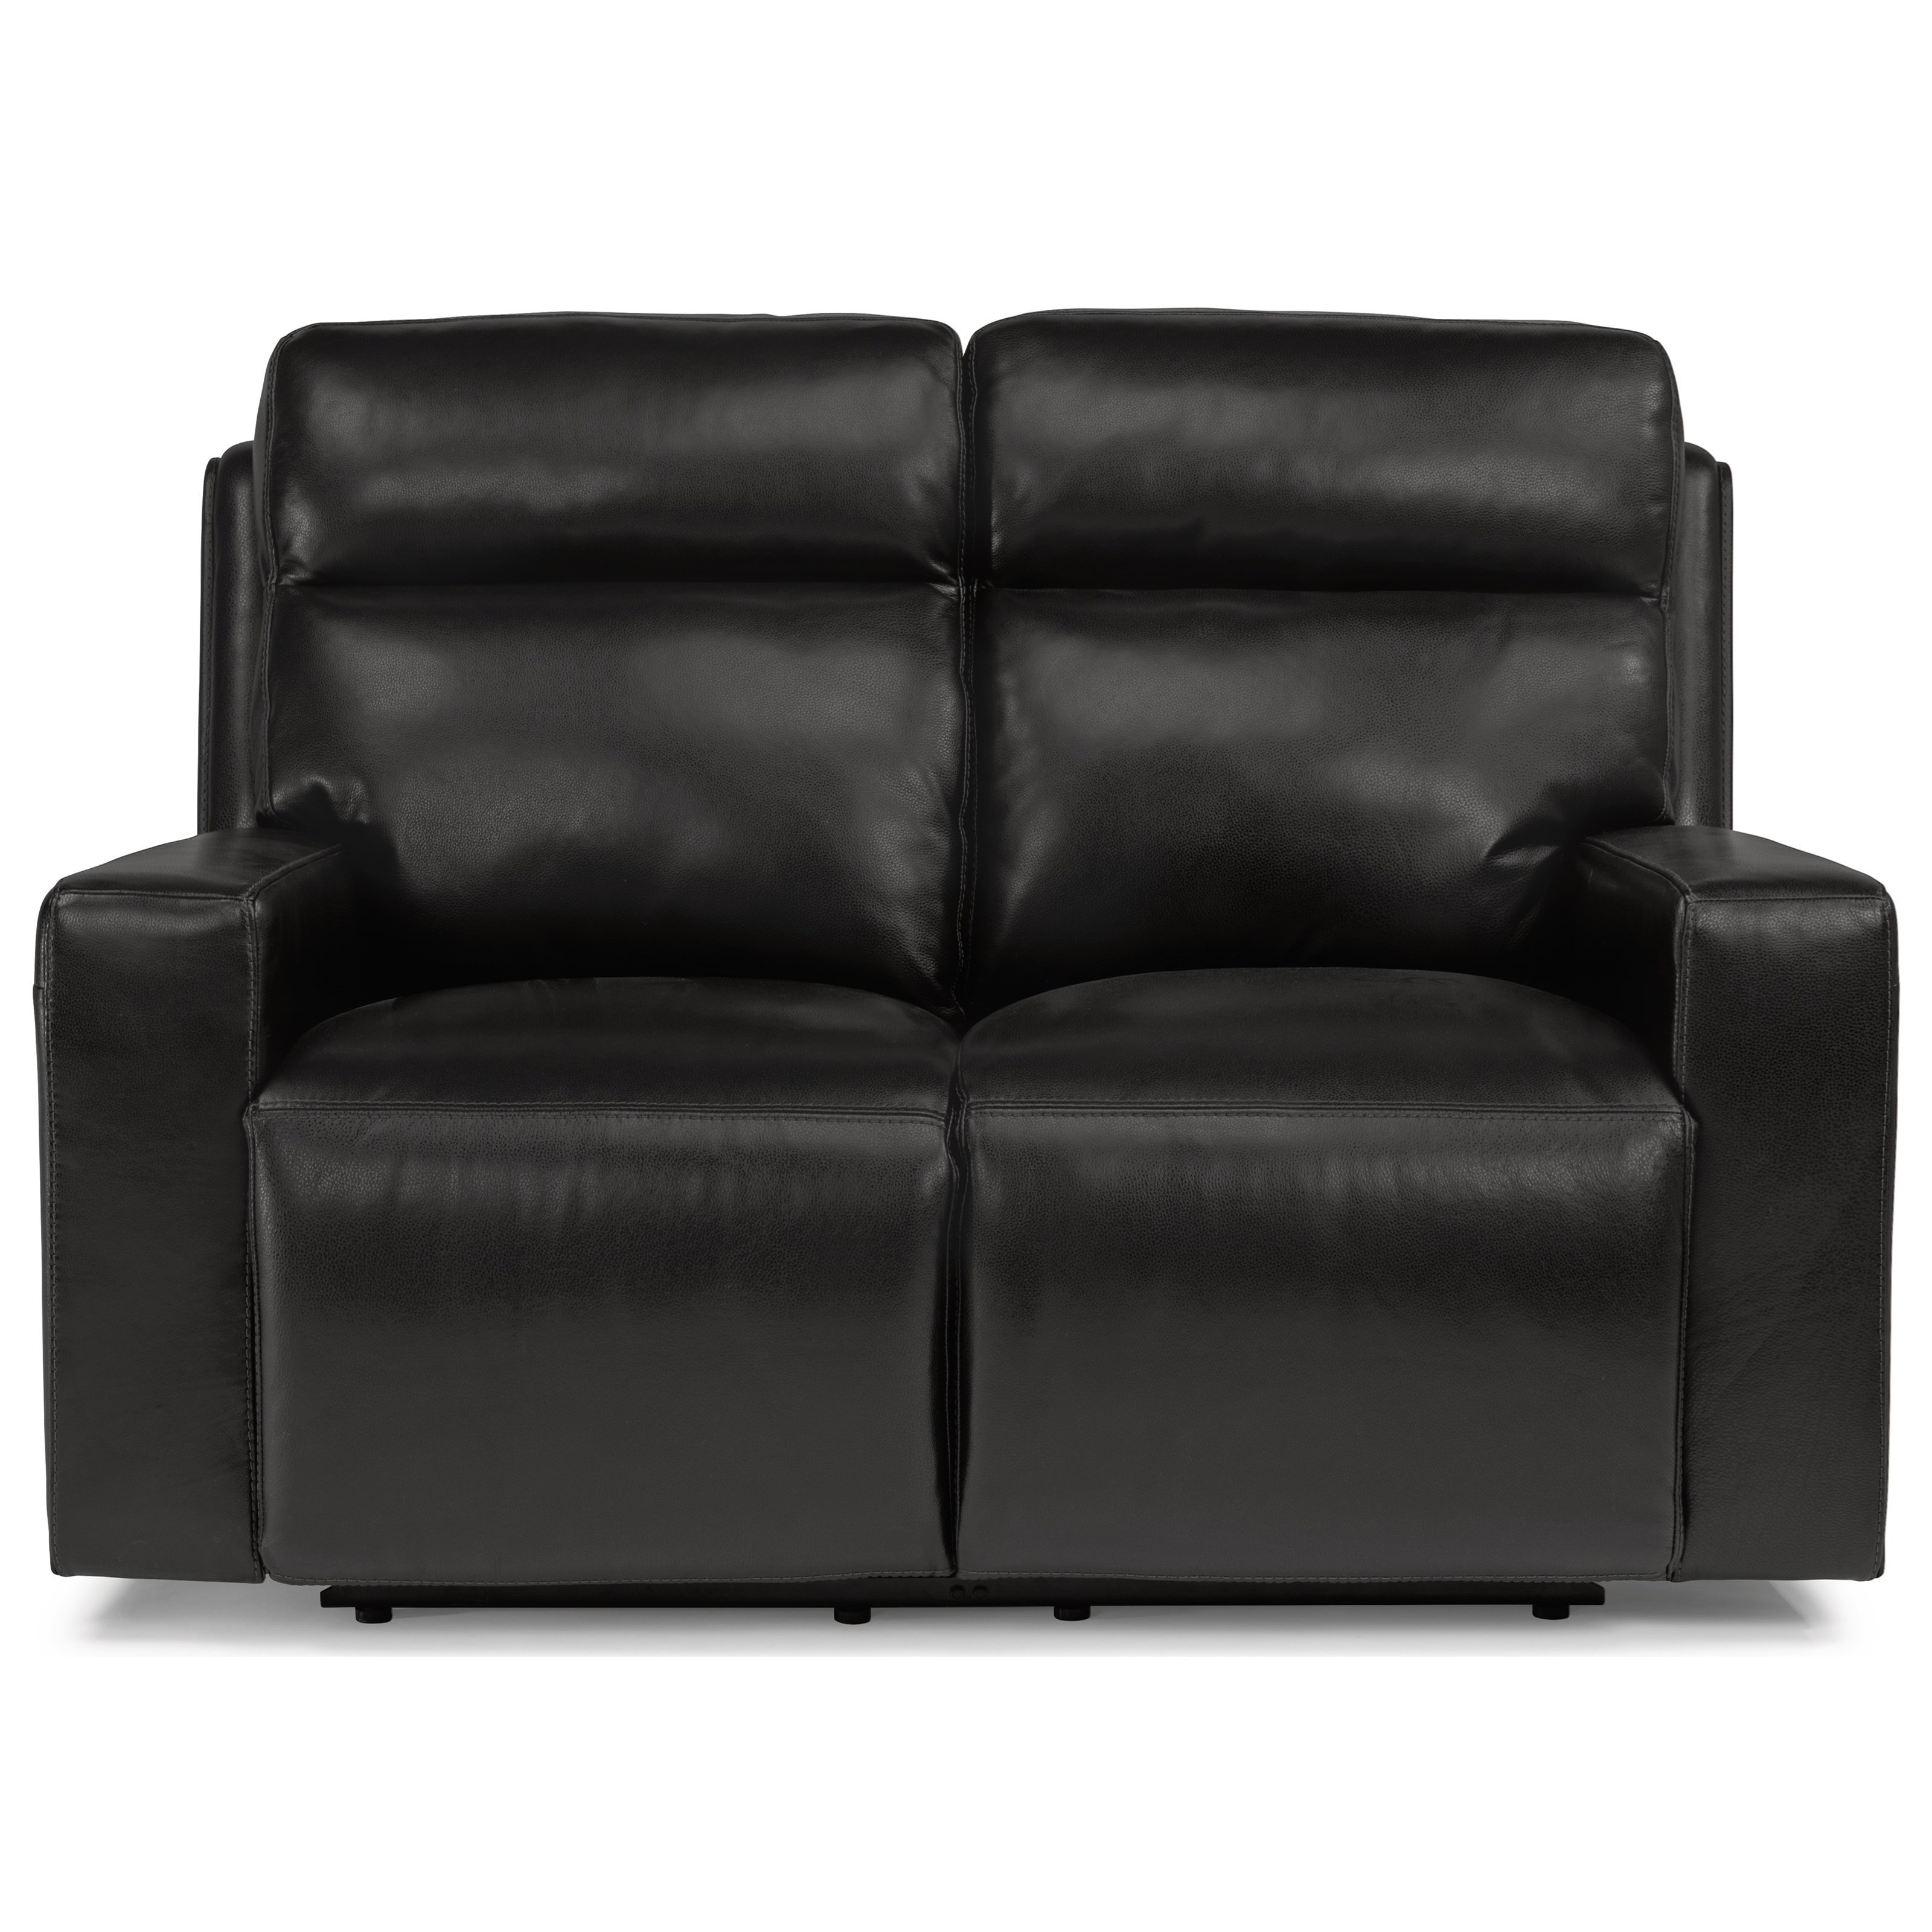 flexsteel number group collections item loveseat room latitudes reclining miles lms dunk living